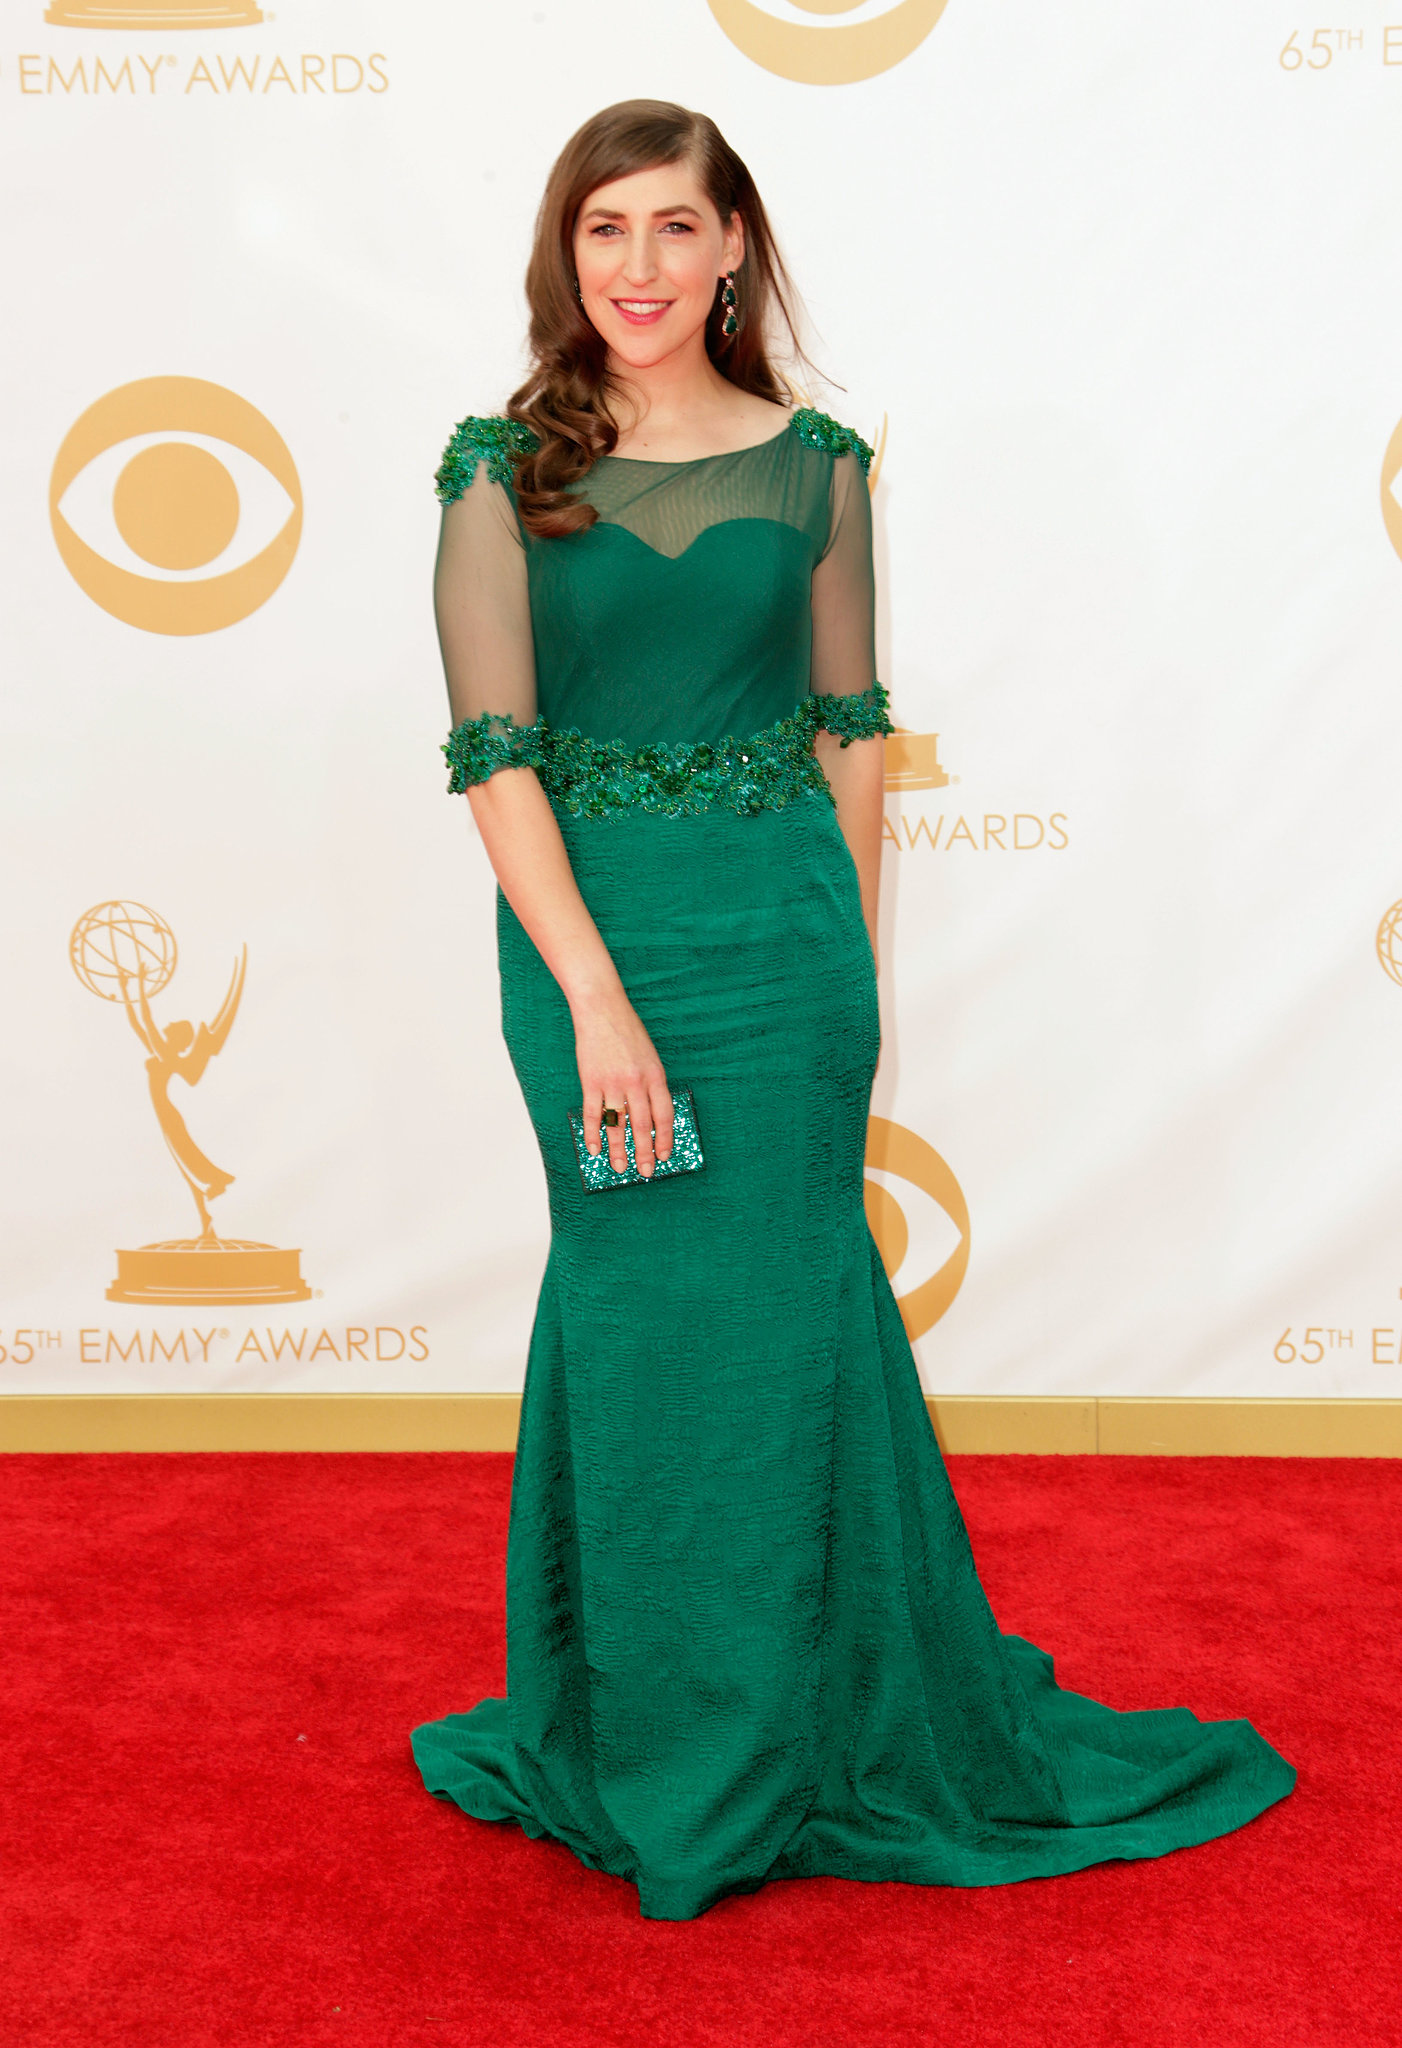 Mayim Bialik glowed in an emerald green Oliver Tolentino Couture gown, with sheer, elb